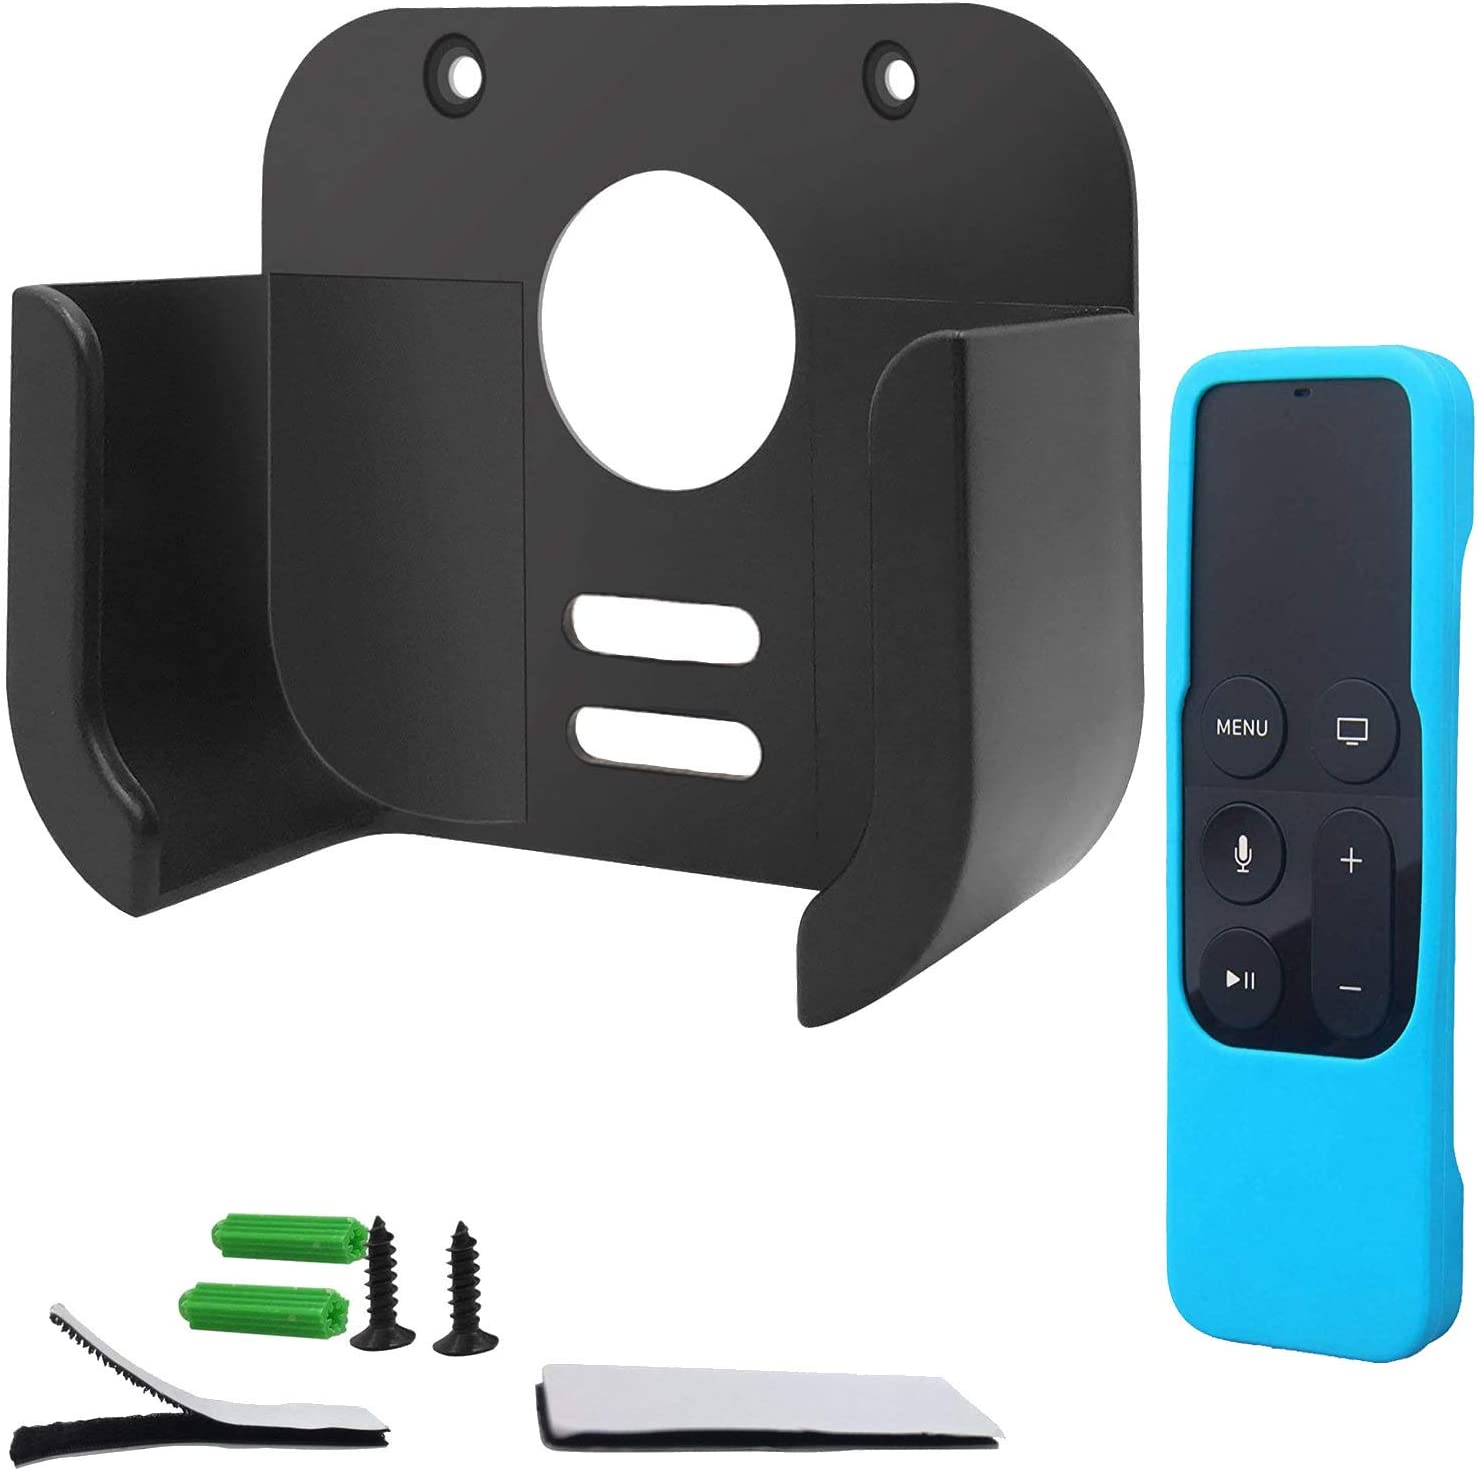 Wall Mount Bracket Compatible with Apple TV 4K 5th and 4th Generation - HJYuan TV Mount Holder with Blue Siri Remote Silicone Protective Case Cover Compatible with Apple TV 4K 5th and 4th Gen